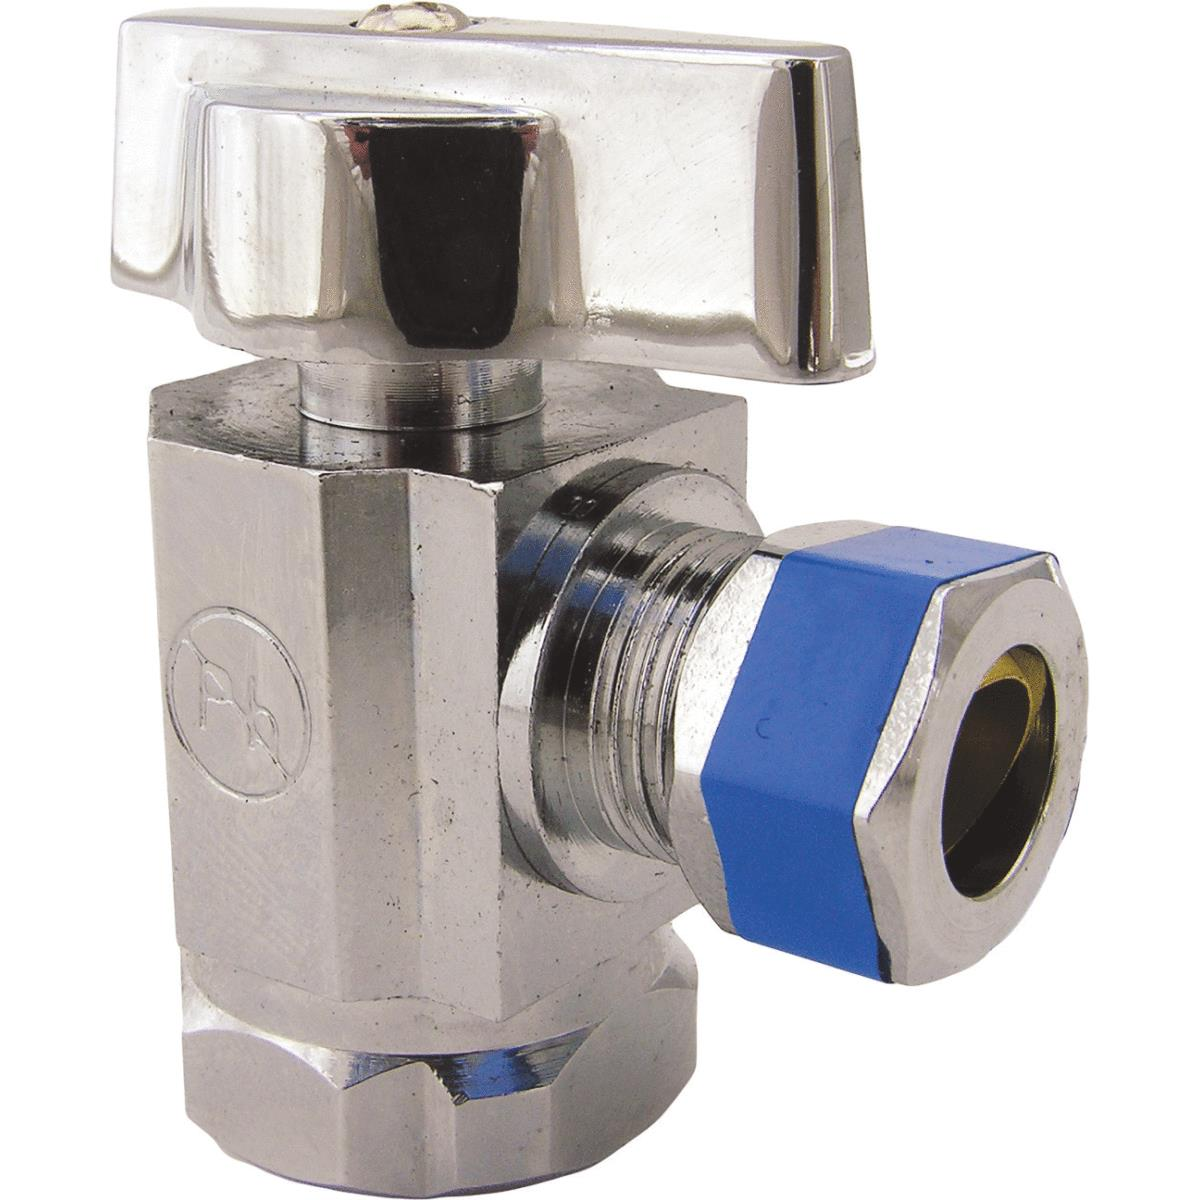 Lasco Iron Pipe Inlet X Comp Outlet Quarter Turn Angle Stop Valve